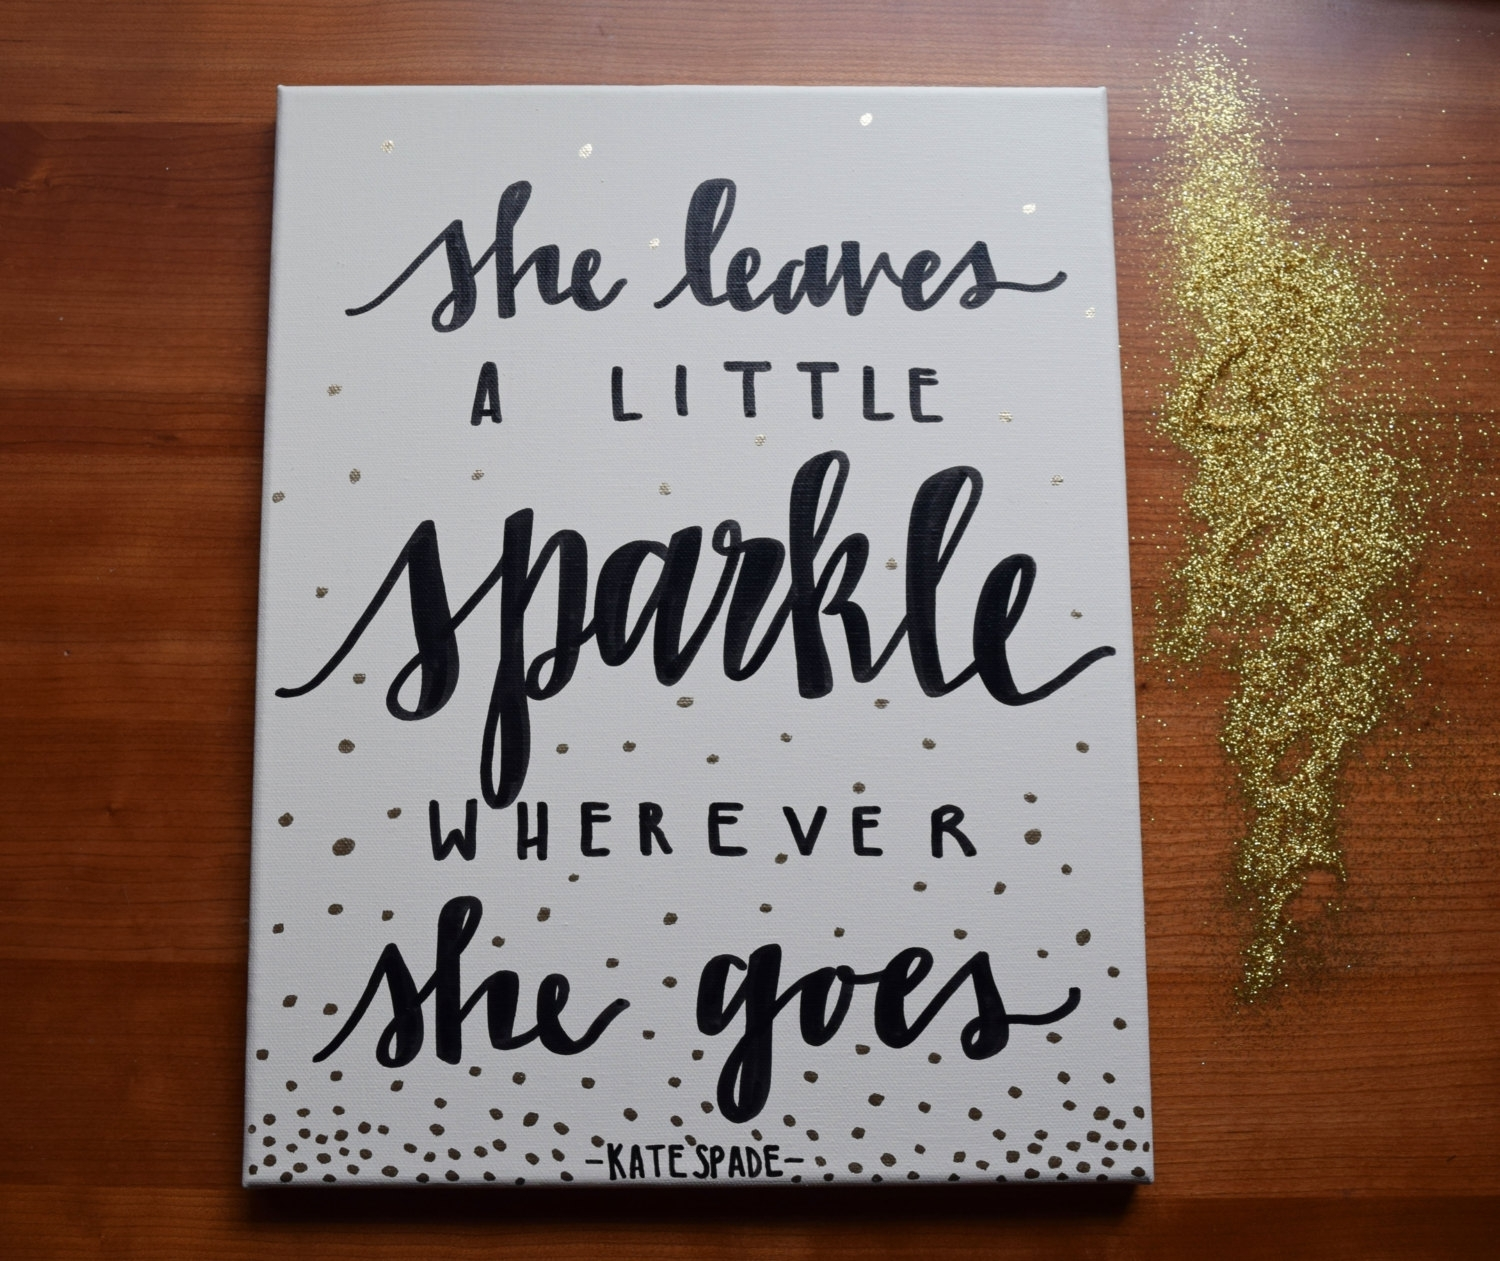 Kate Spade Quote Kate Spade Canvas Kate Spade Lettered, Kate Spade With Kate Spade Wall Art (Photo 8 of 20)